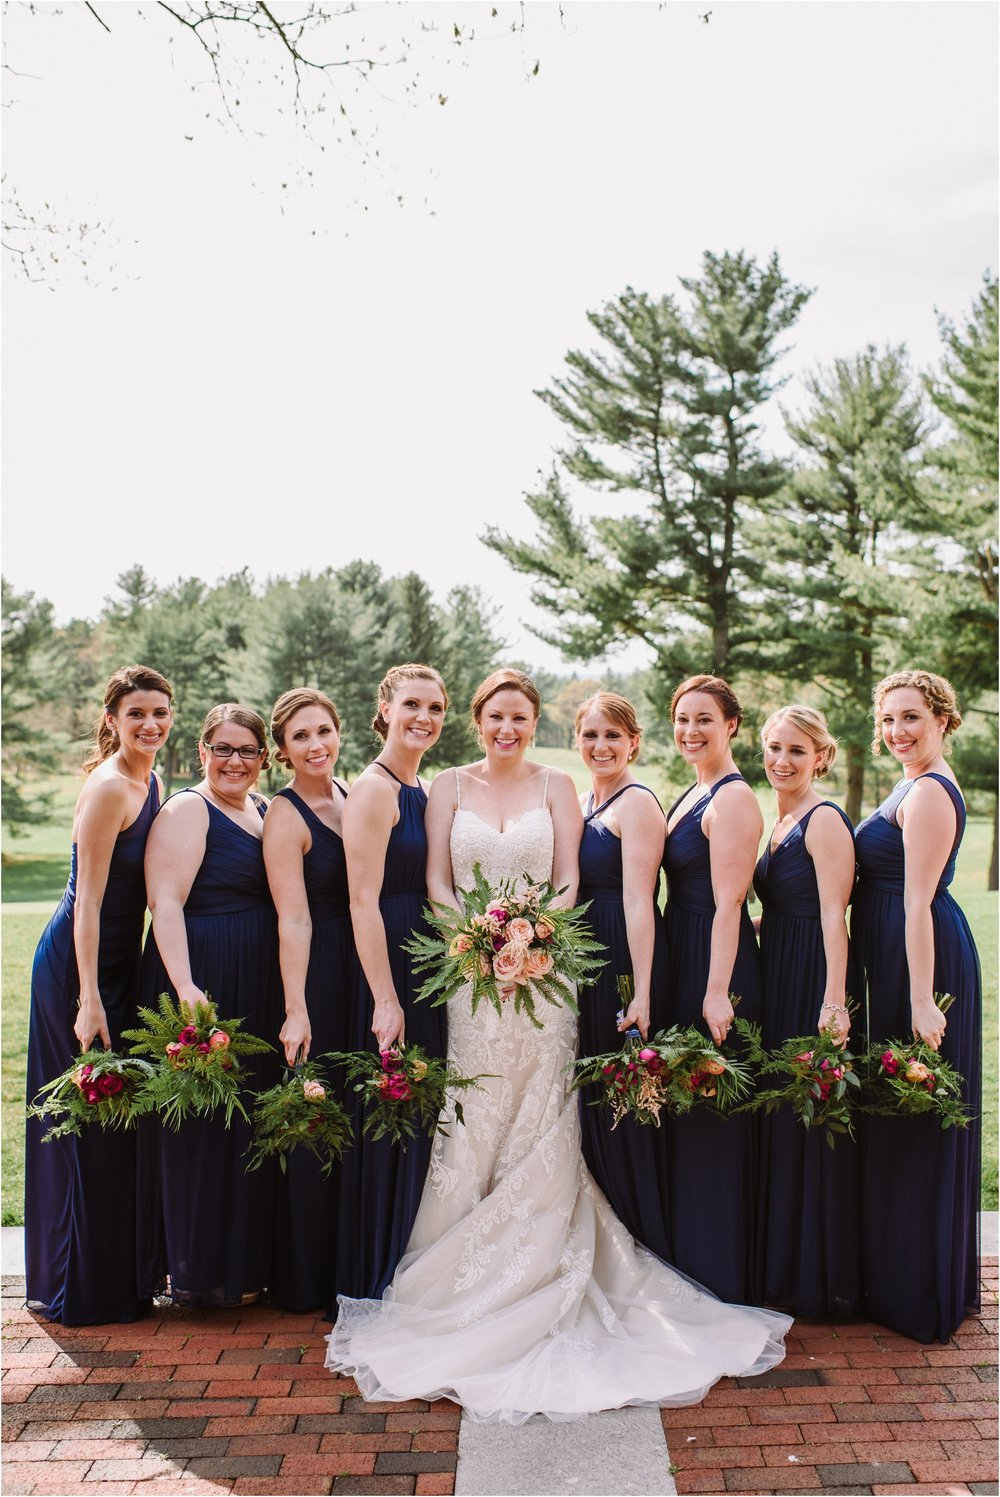 Nicole Ellen Photography Boston Wedding Photographer-118.jpg